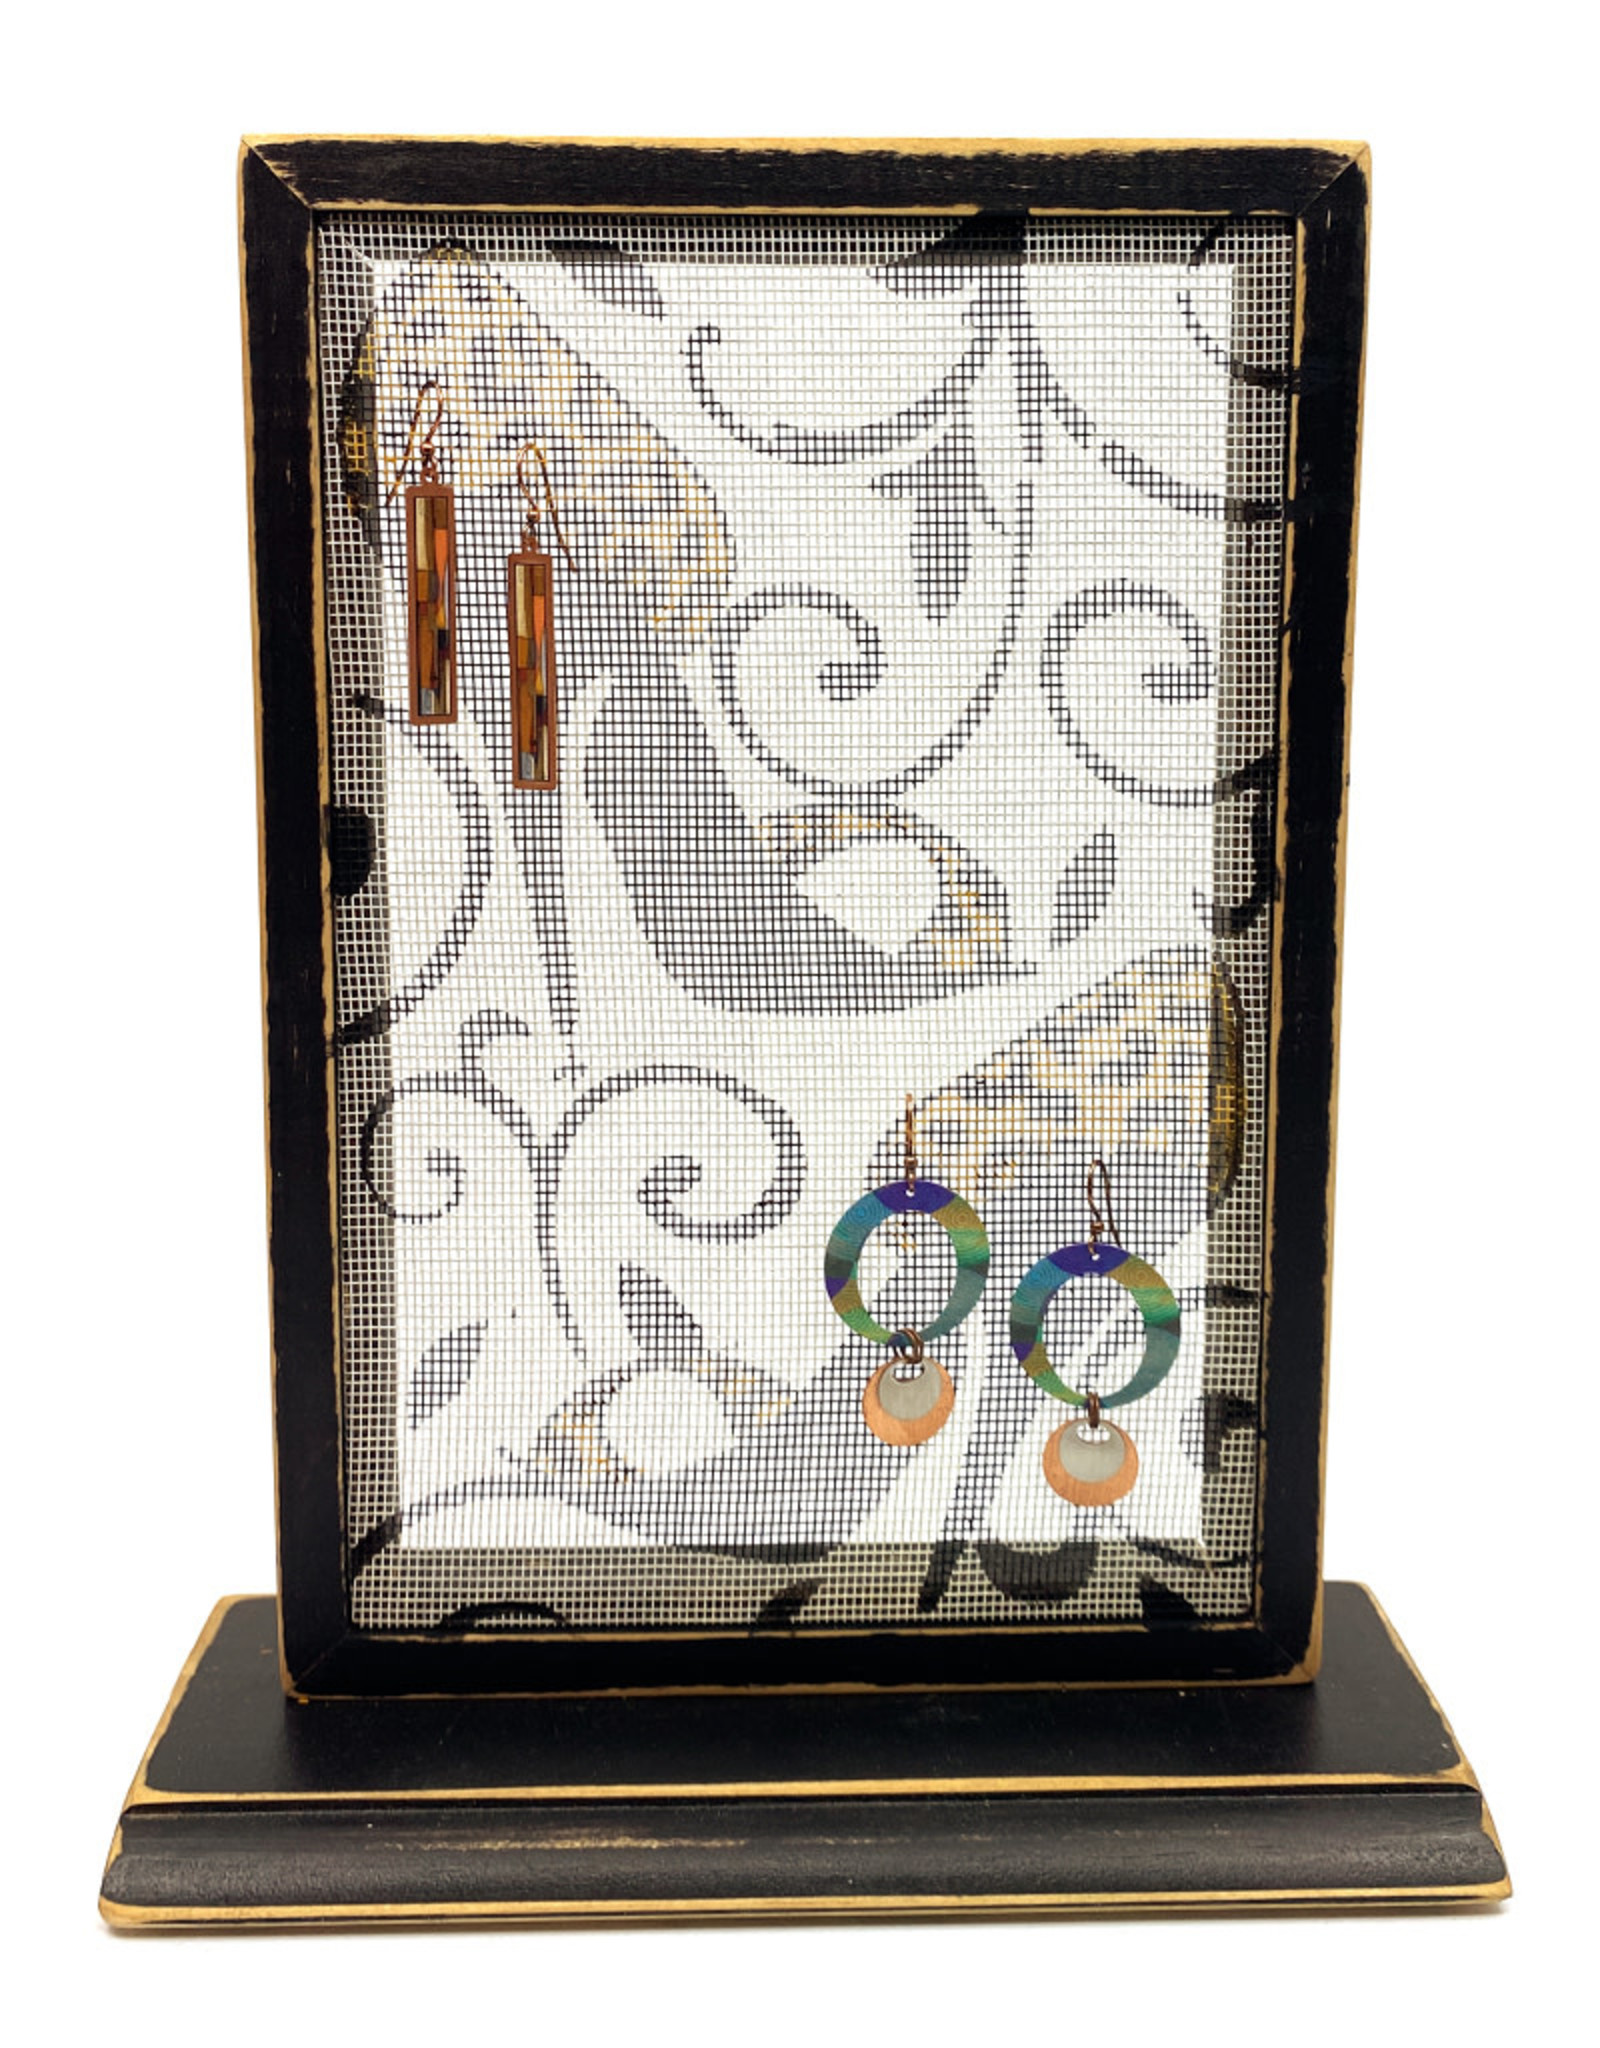 EARRING HOLDER GALLERY SHOES EARRING HOLDER WITH BASE